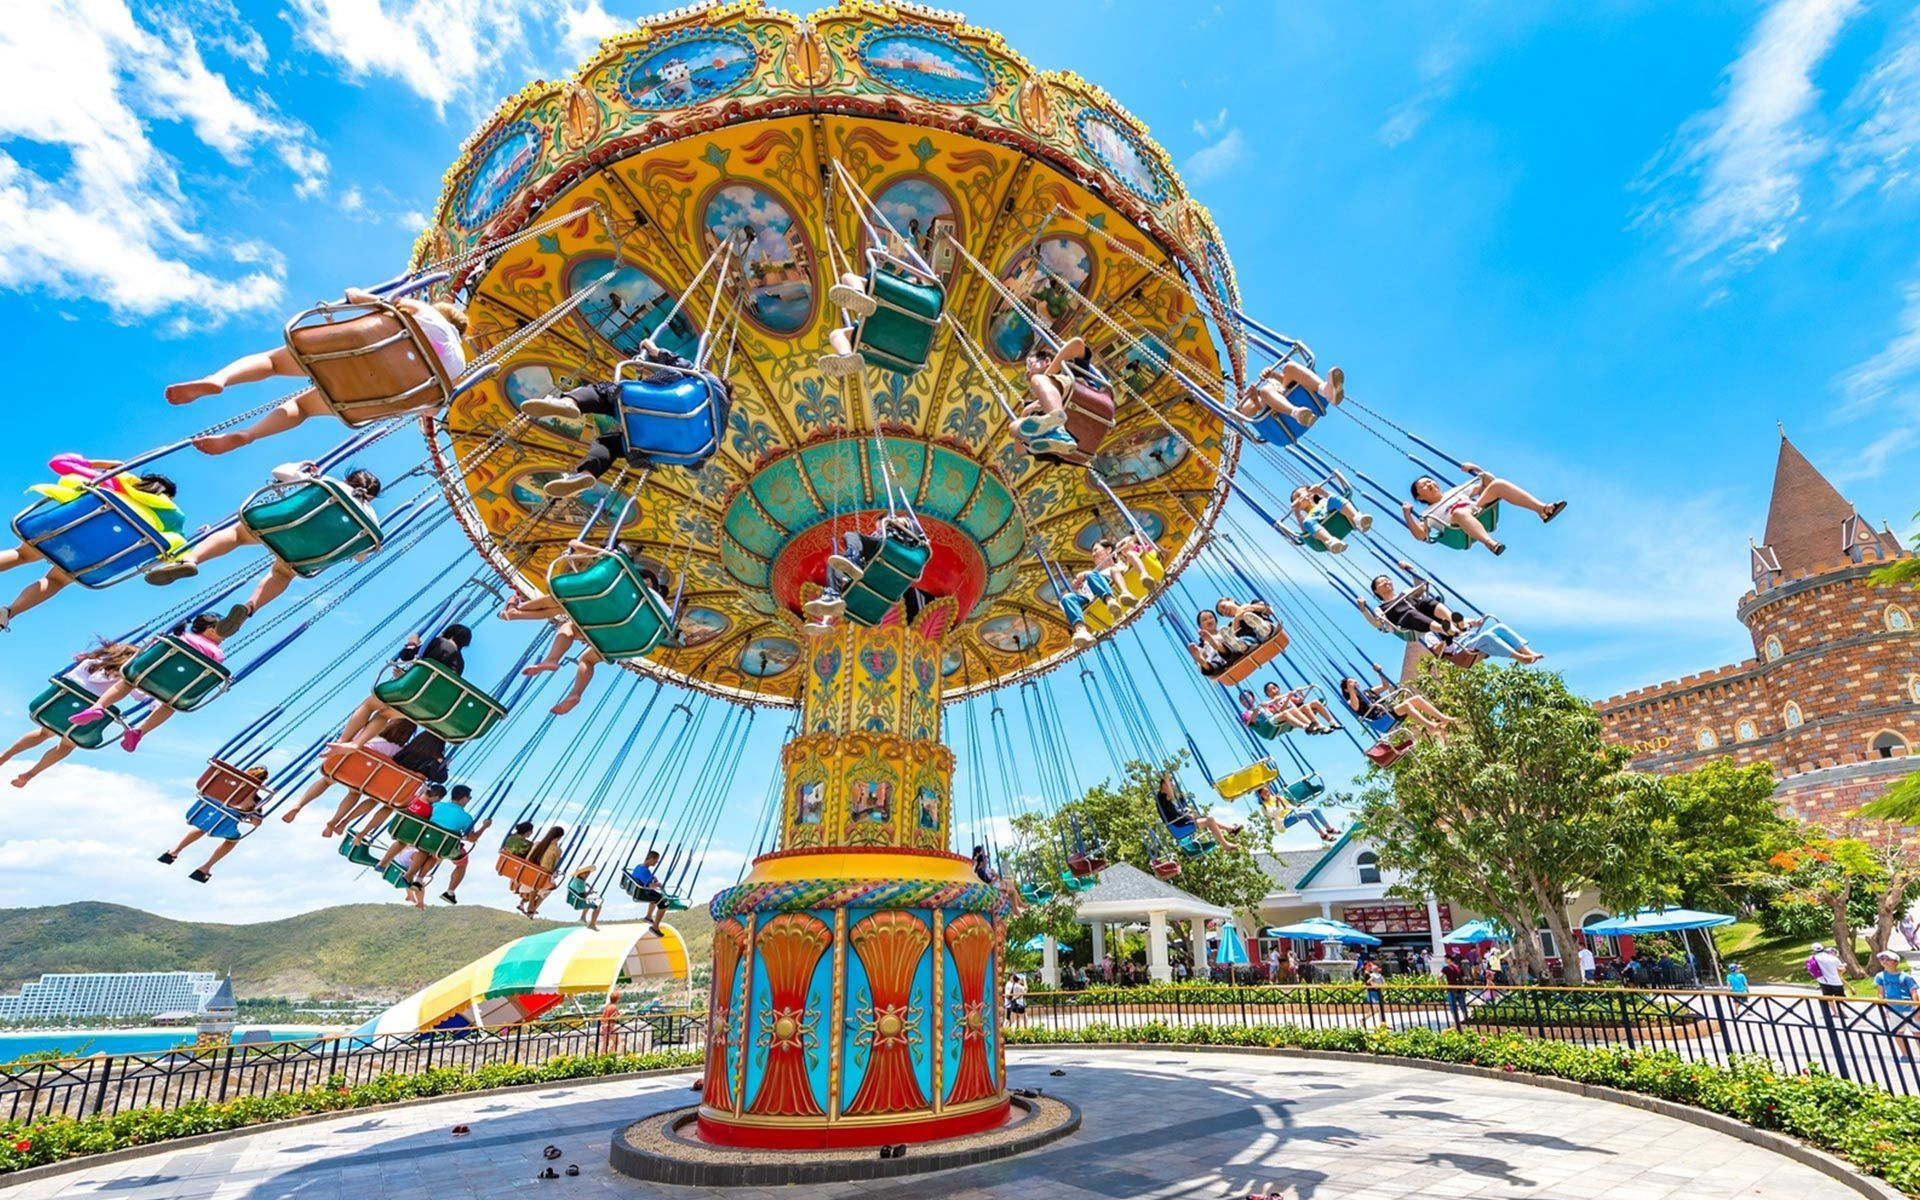 Vinpearl Amusement Park on Hon Tre Island brings a great day out for all the families with children or youngsters with high adventurous spirit.